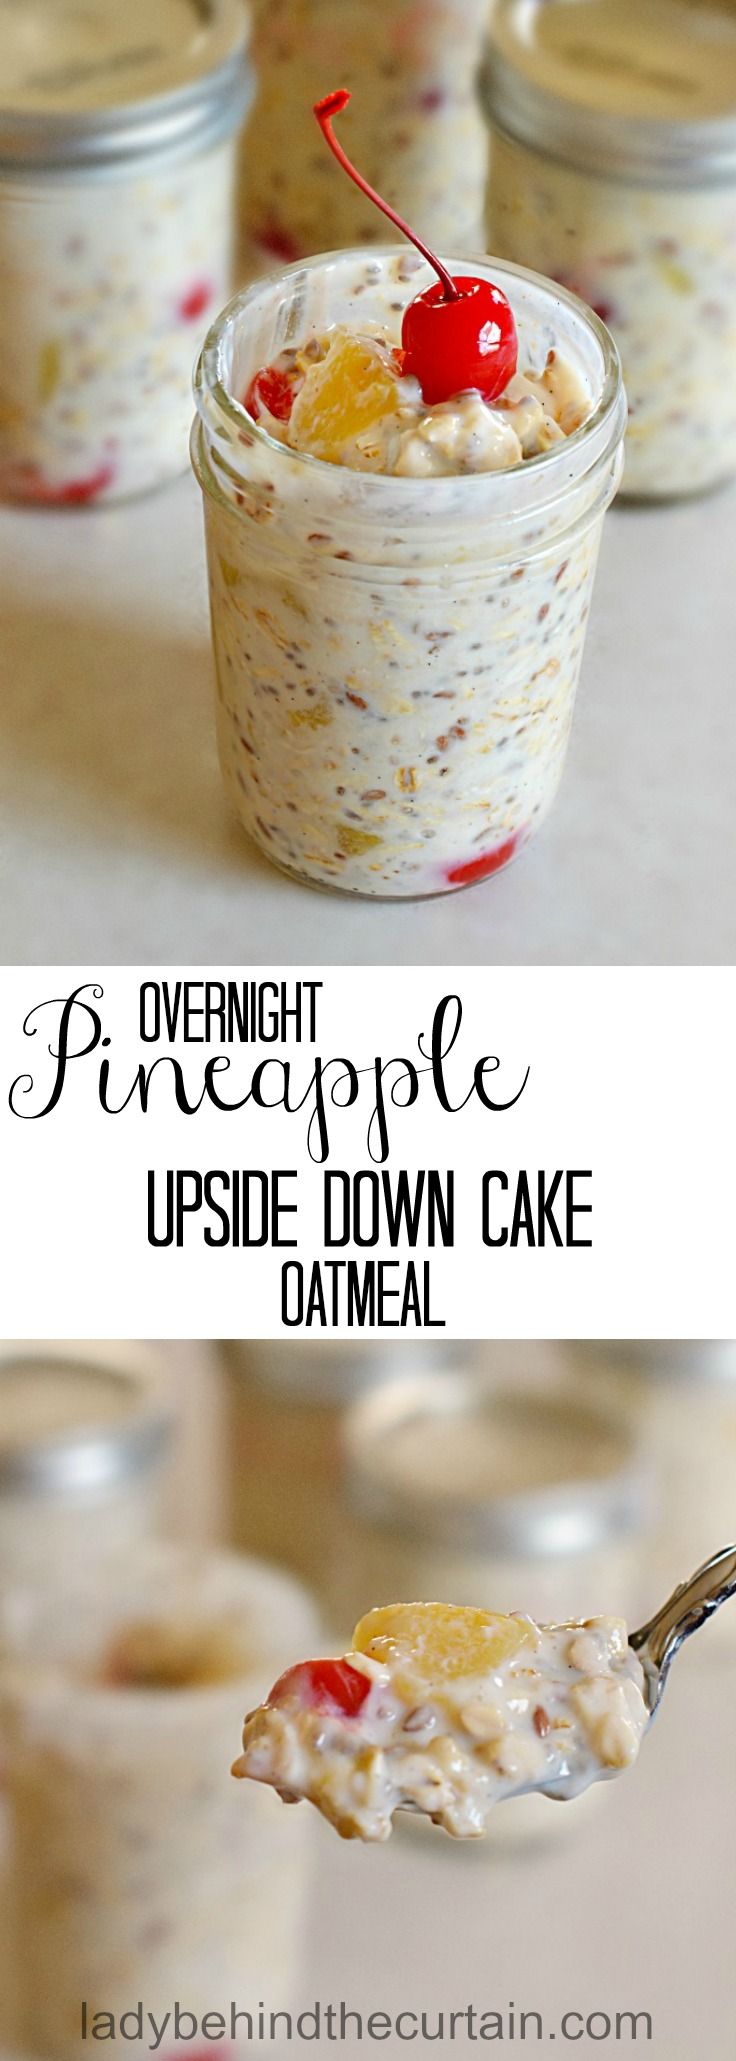 Can I Make Pineapple Upside Down Cake The Night Before